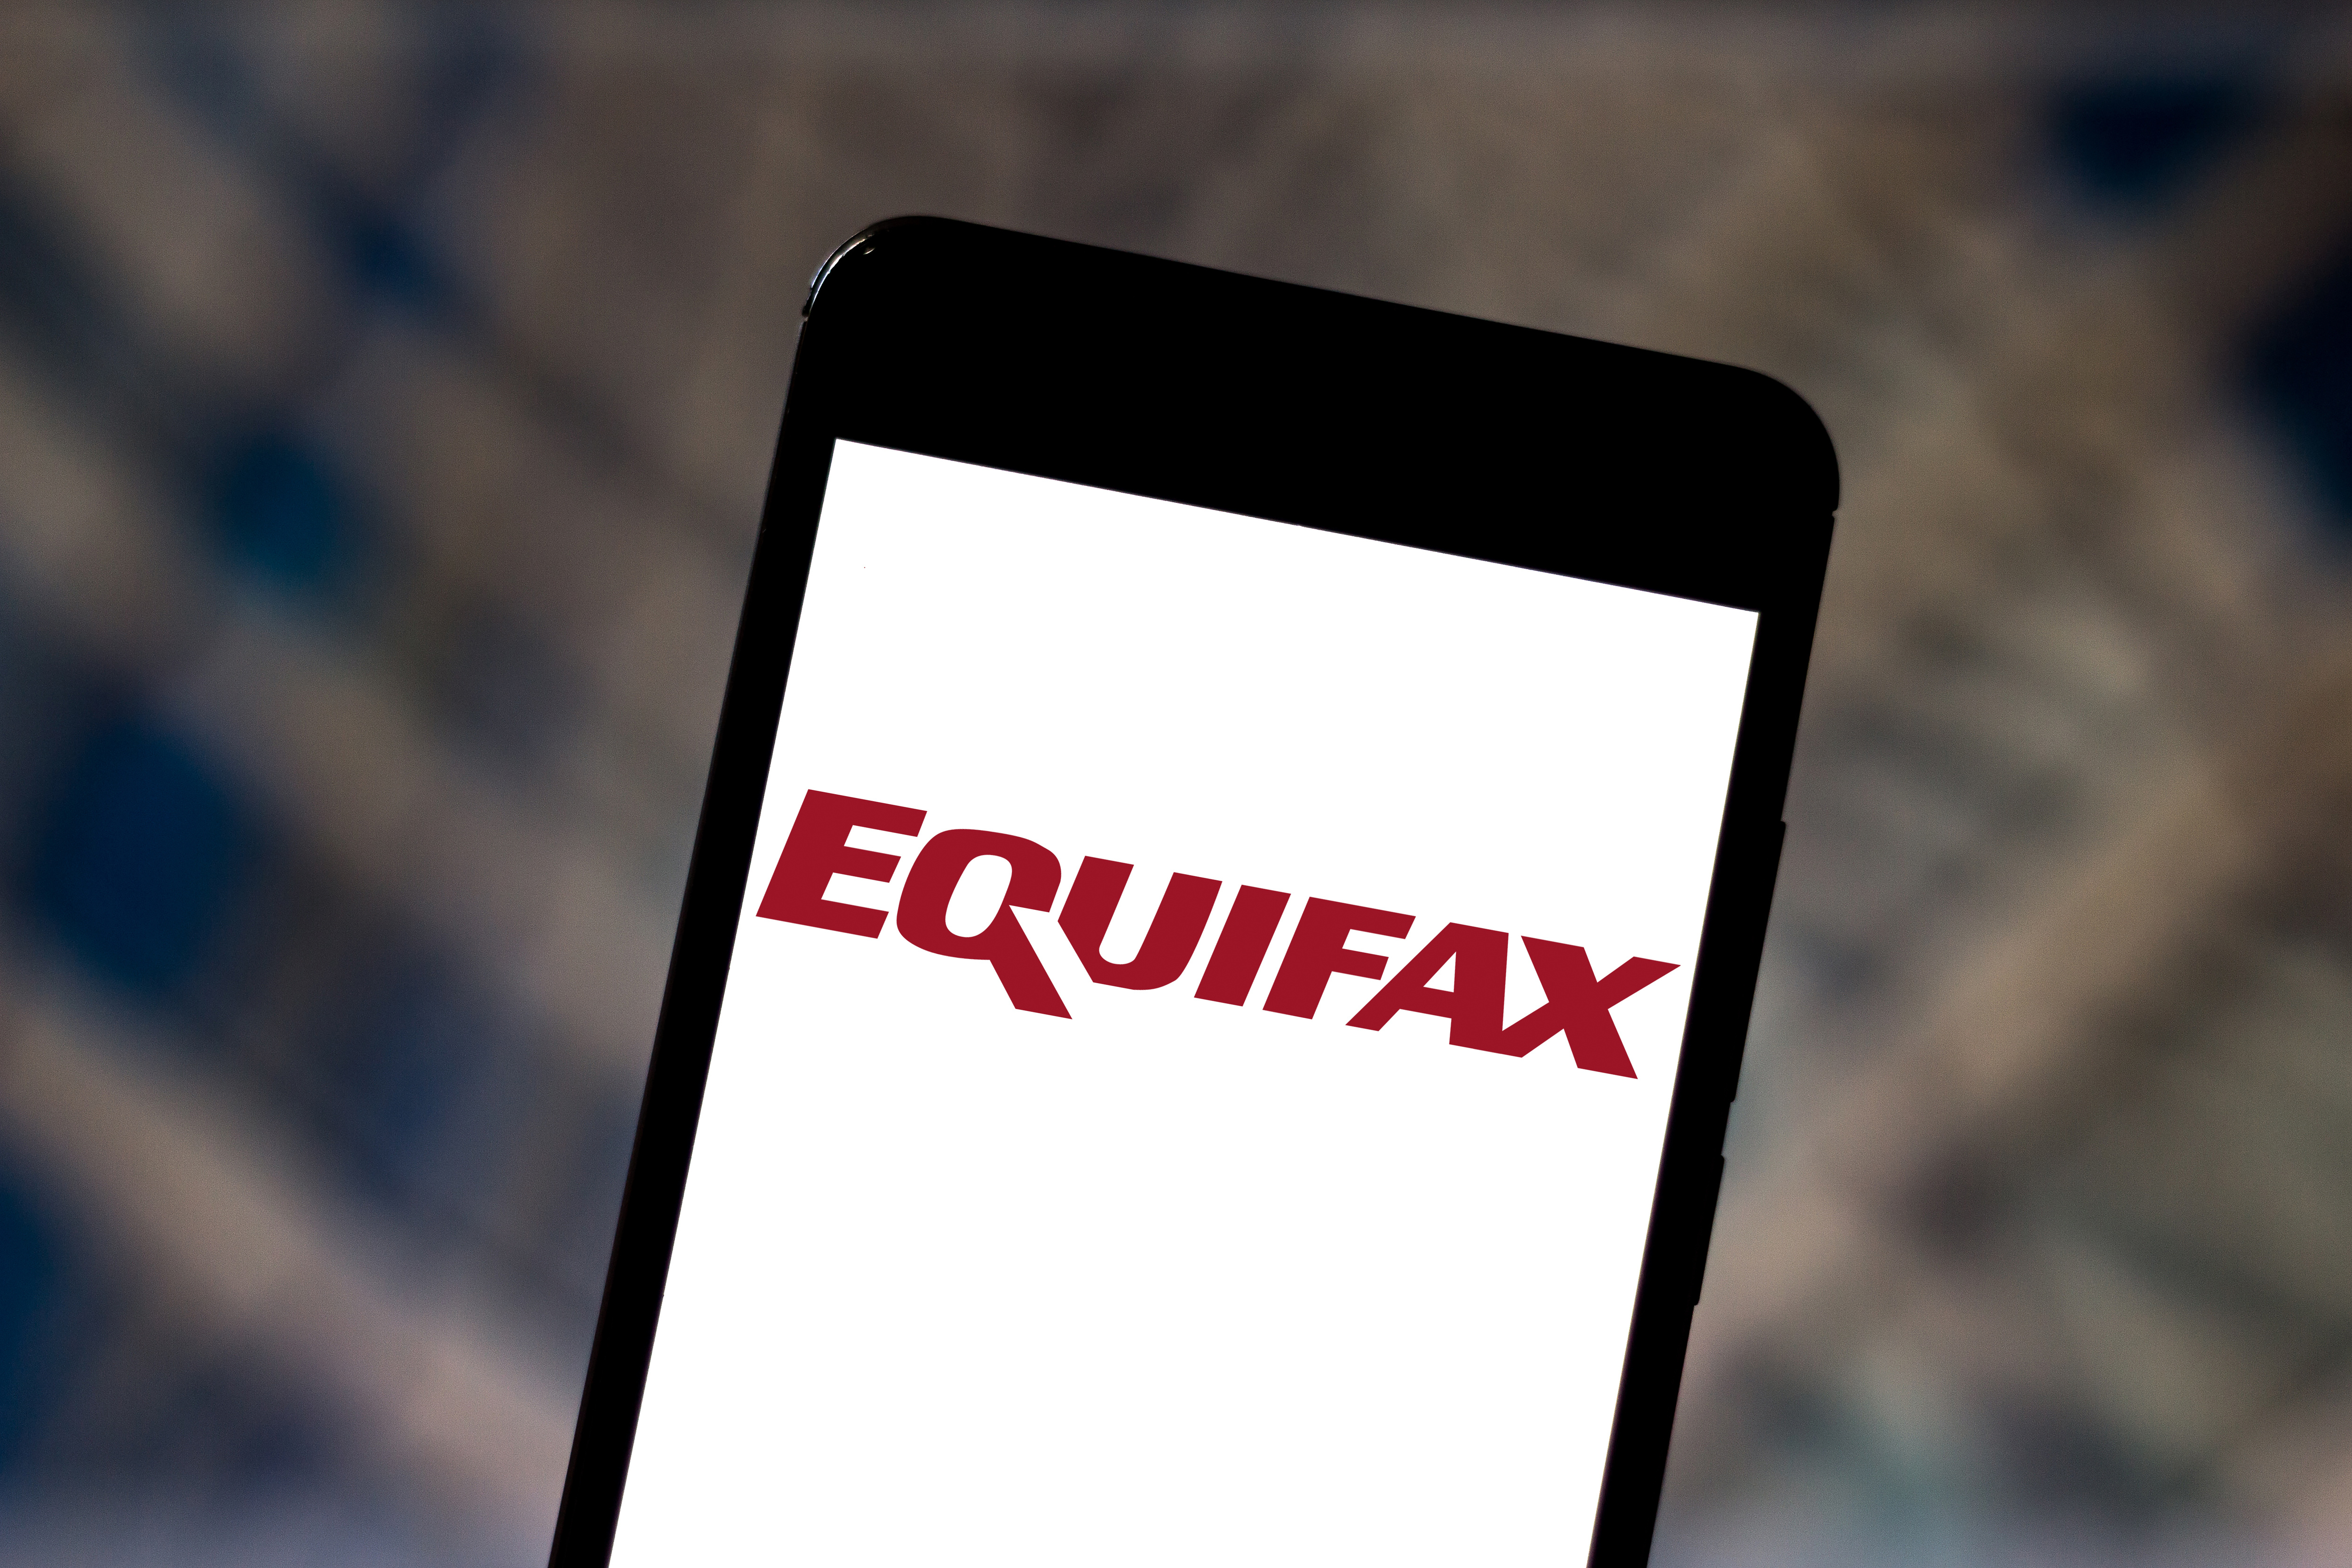 There's yet another step to claim $125 from Equifax. People are not happy.